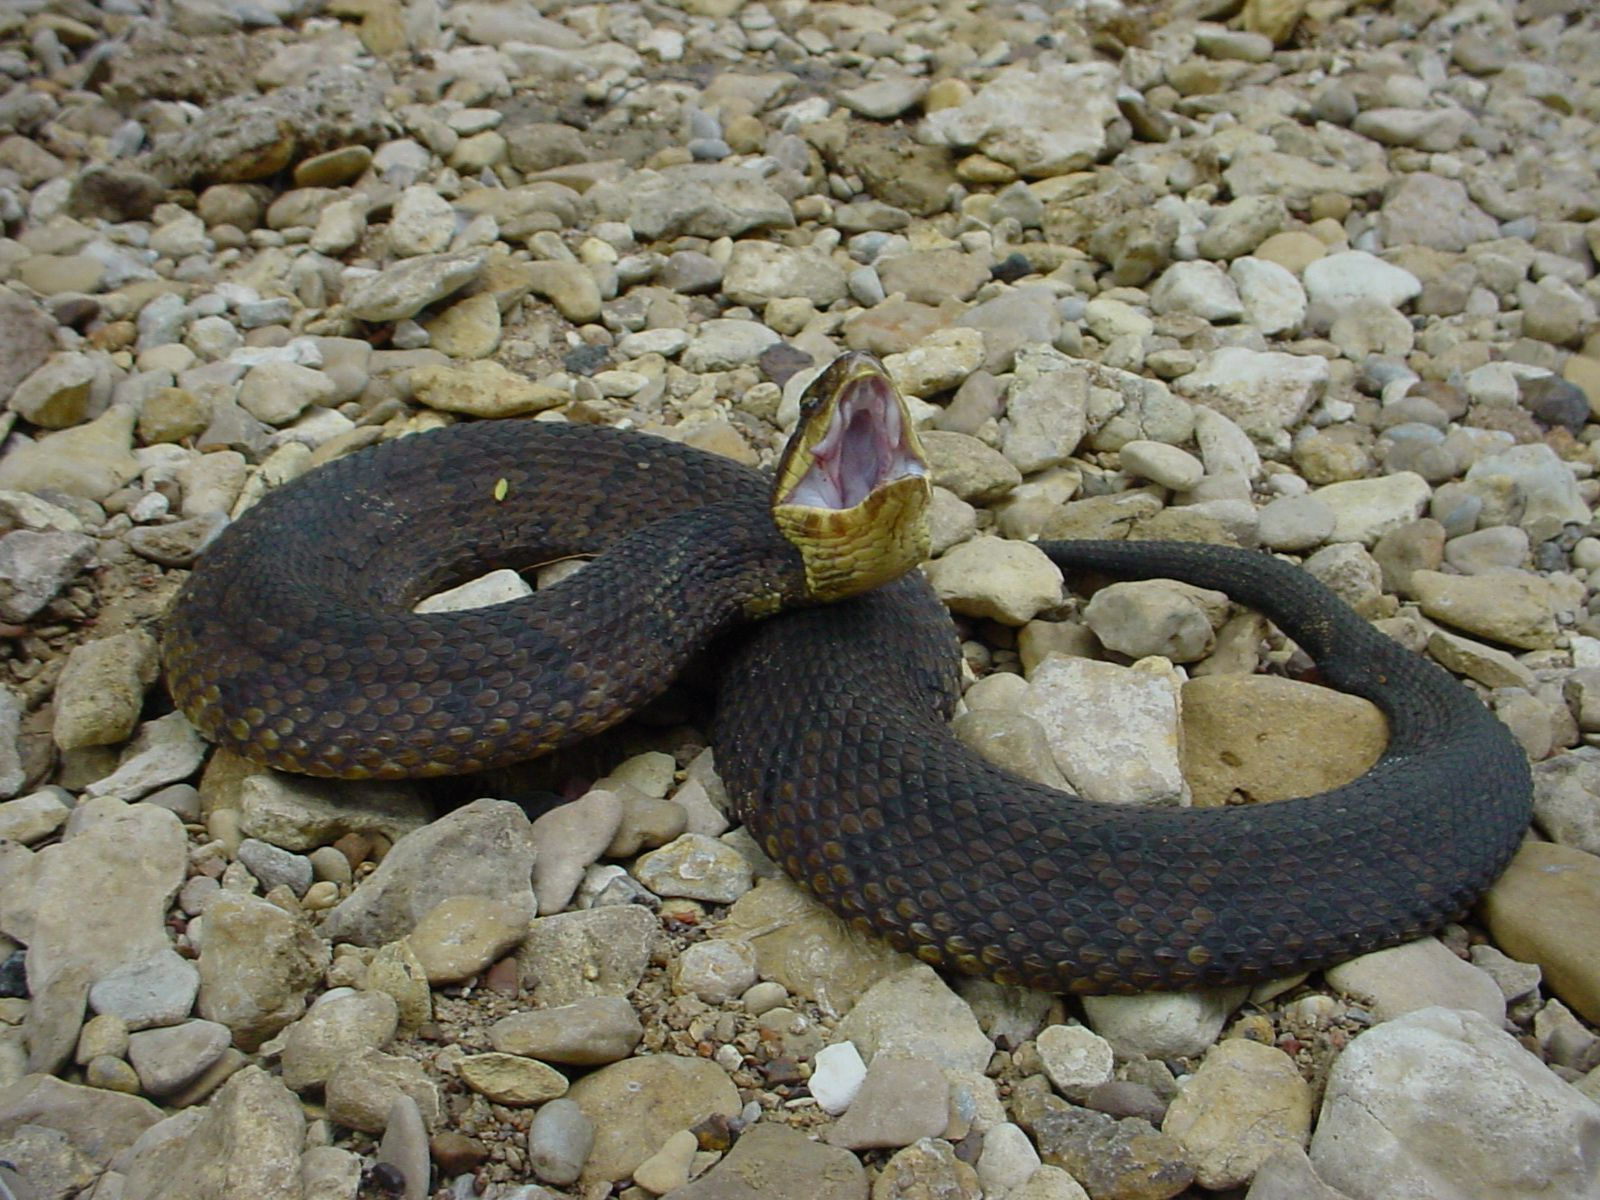 The cottonmouth, or water moccasin, is one of four types of venomous snakes found in North Texas. They can be big and bulky, and they have a darker pattern than the copperhead, to which they are closely related.  They often send a warning by opening their mouths, revealing the cottony lining inside.